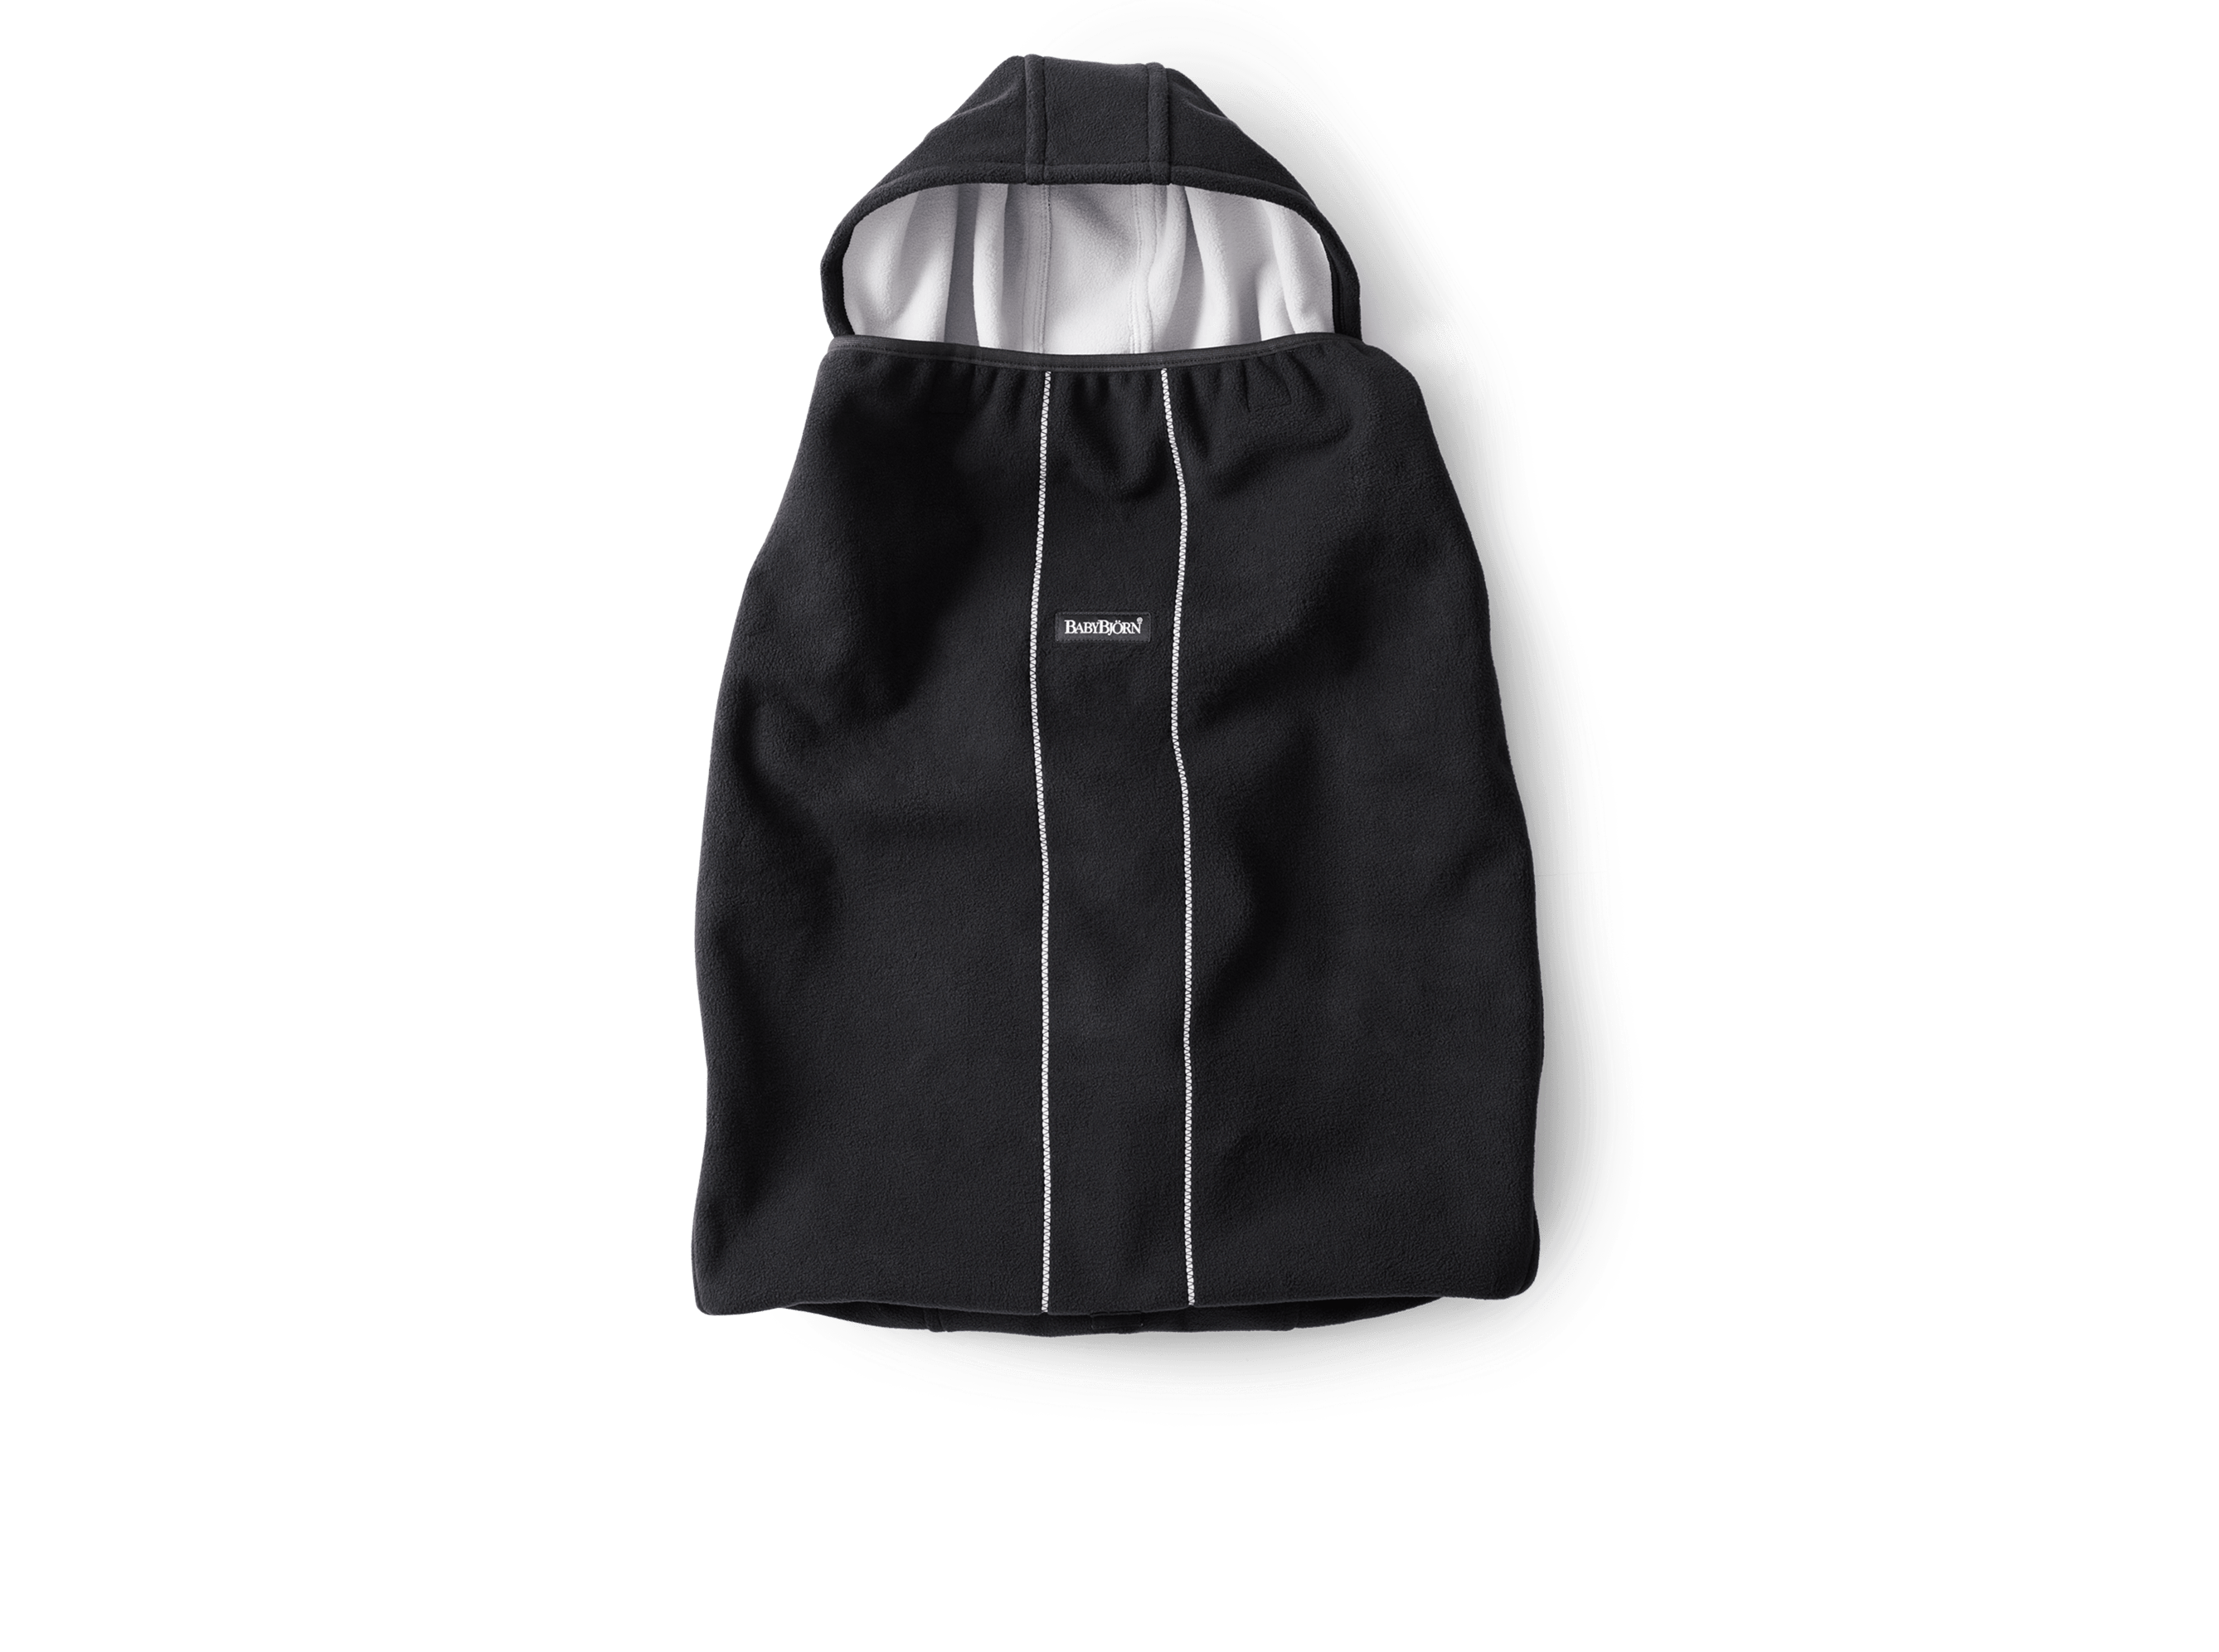 Windproof Cover For Baby Carrier New Babybj 214 Rn